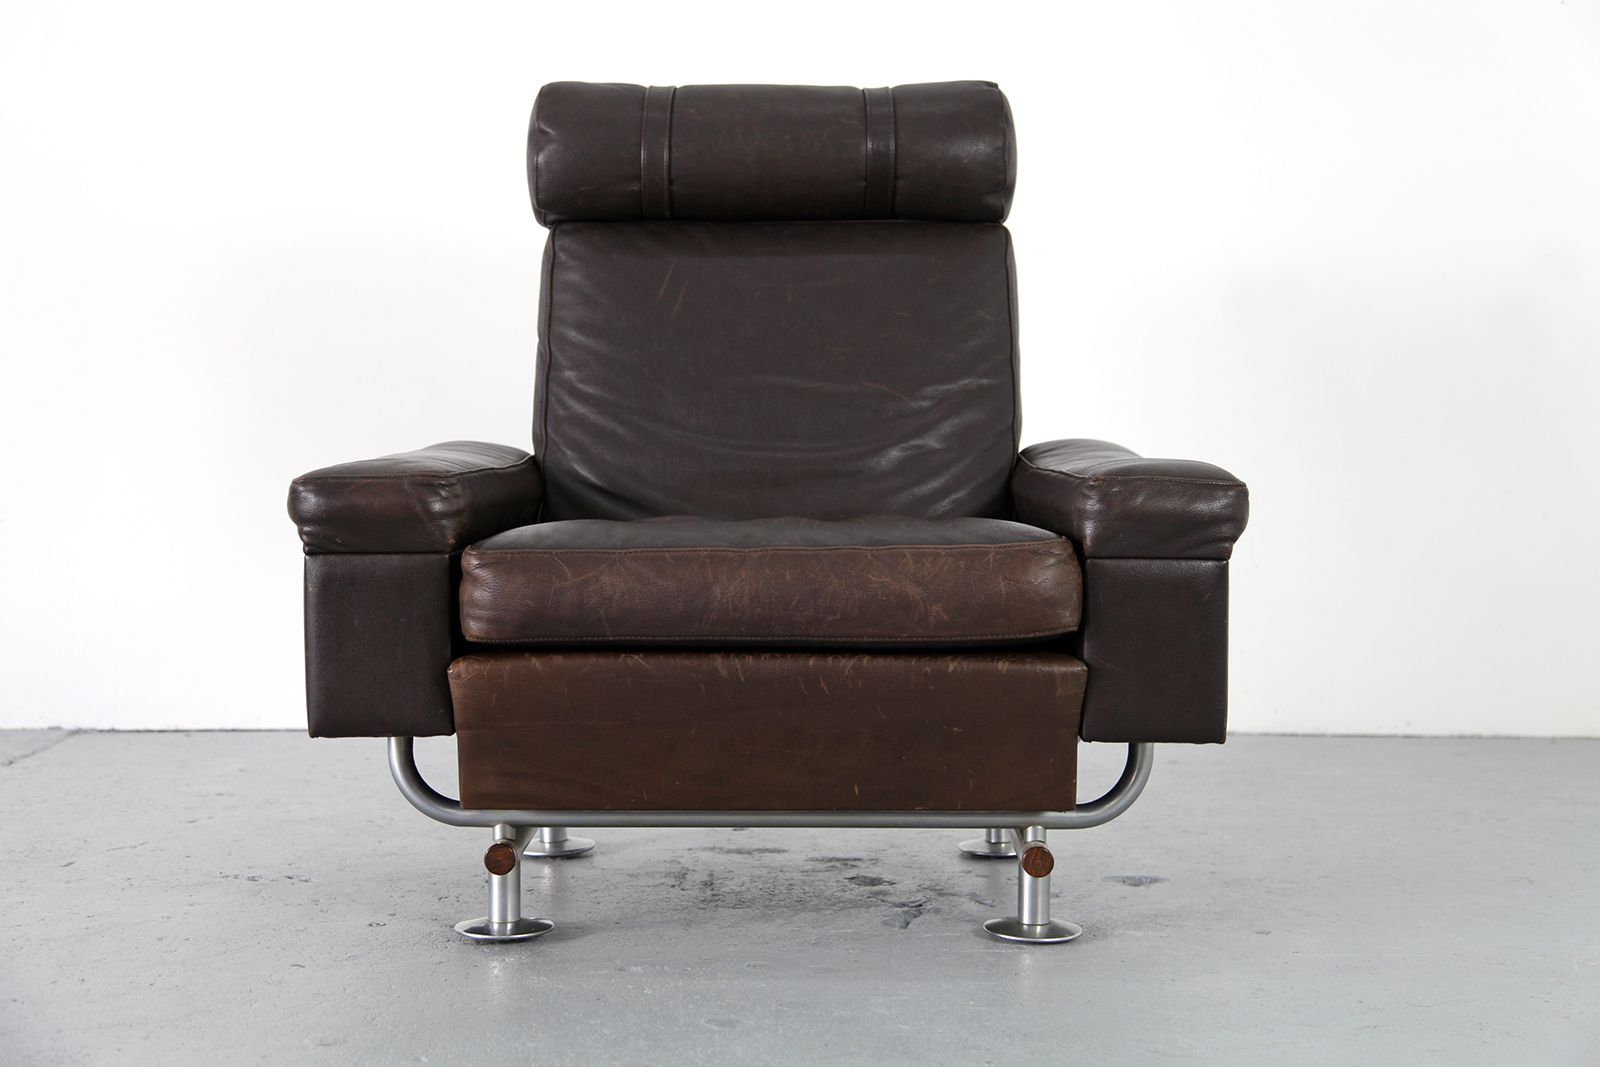 Mid Centry Lounge Chair with Ottoman by Illum Wikkelsø for Arhus Polstermøbel